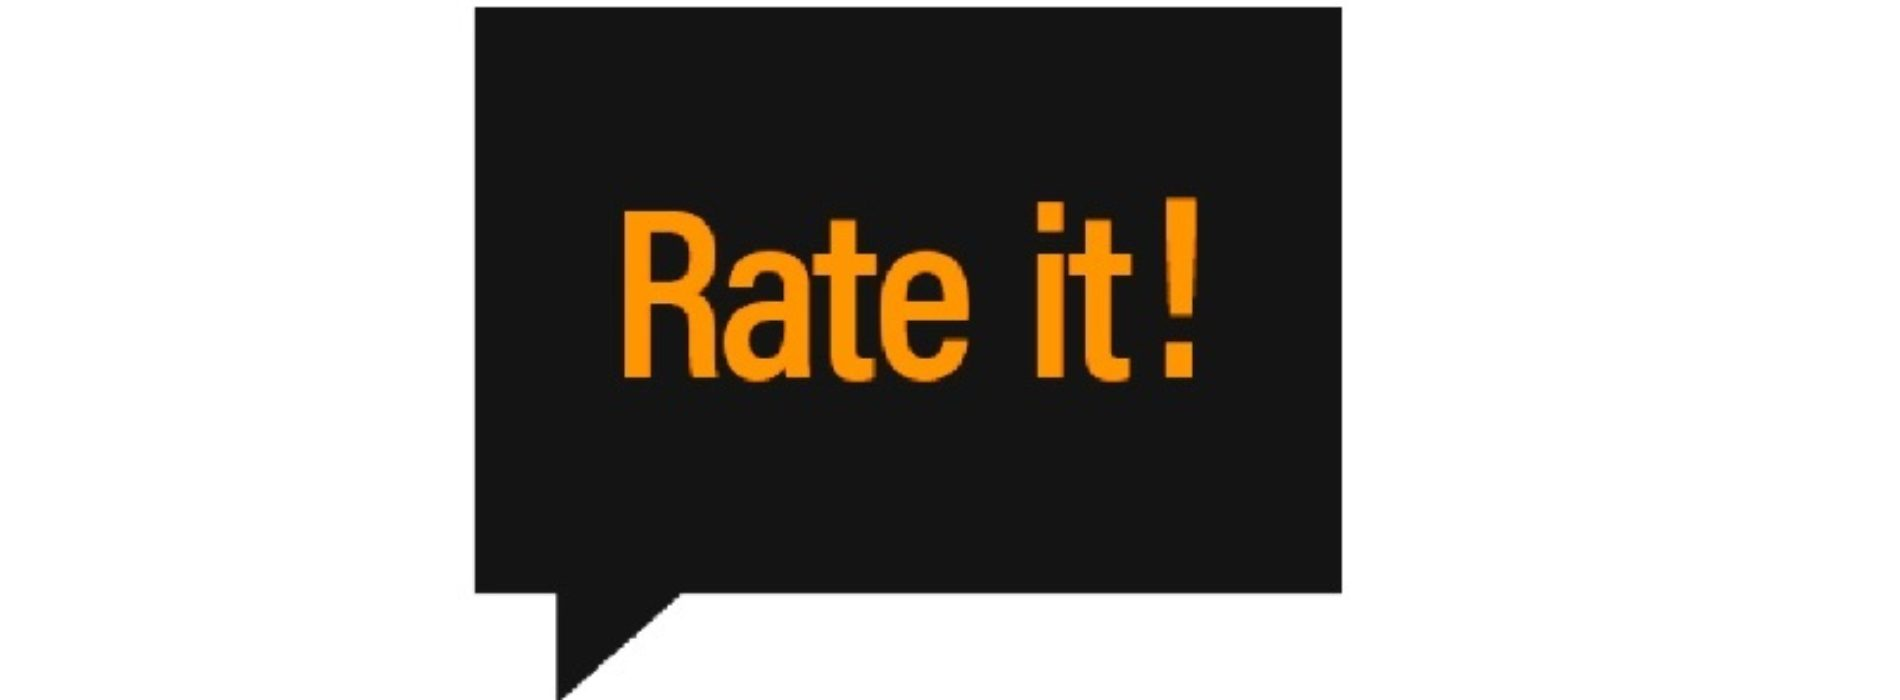 3 top-rated products for disabled people on Rate it!